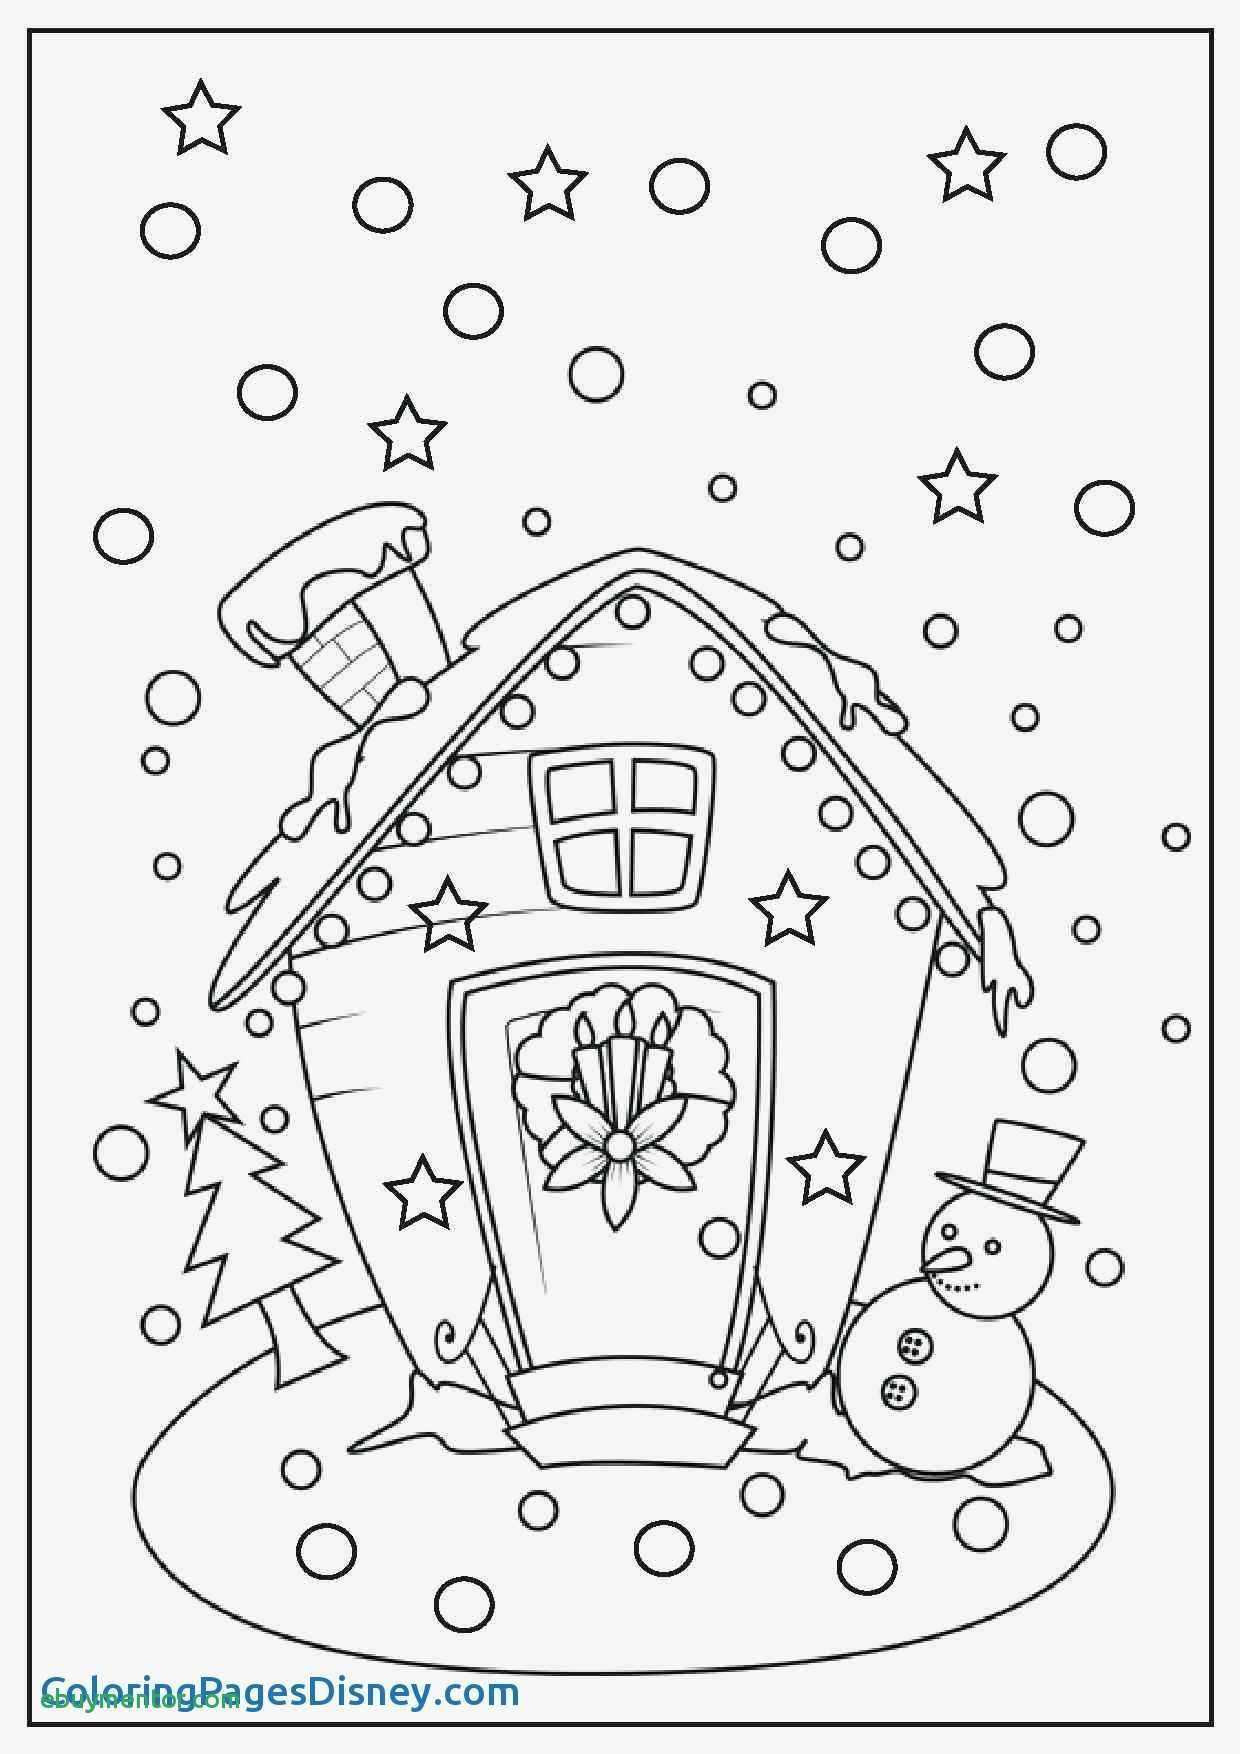 Ausmalbilder Donald Duck Genial Duck Coloring Pages Best Donald Duck Christmas Coloring Pages to Sammlung